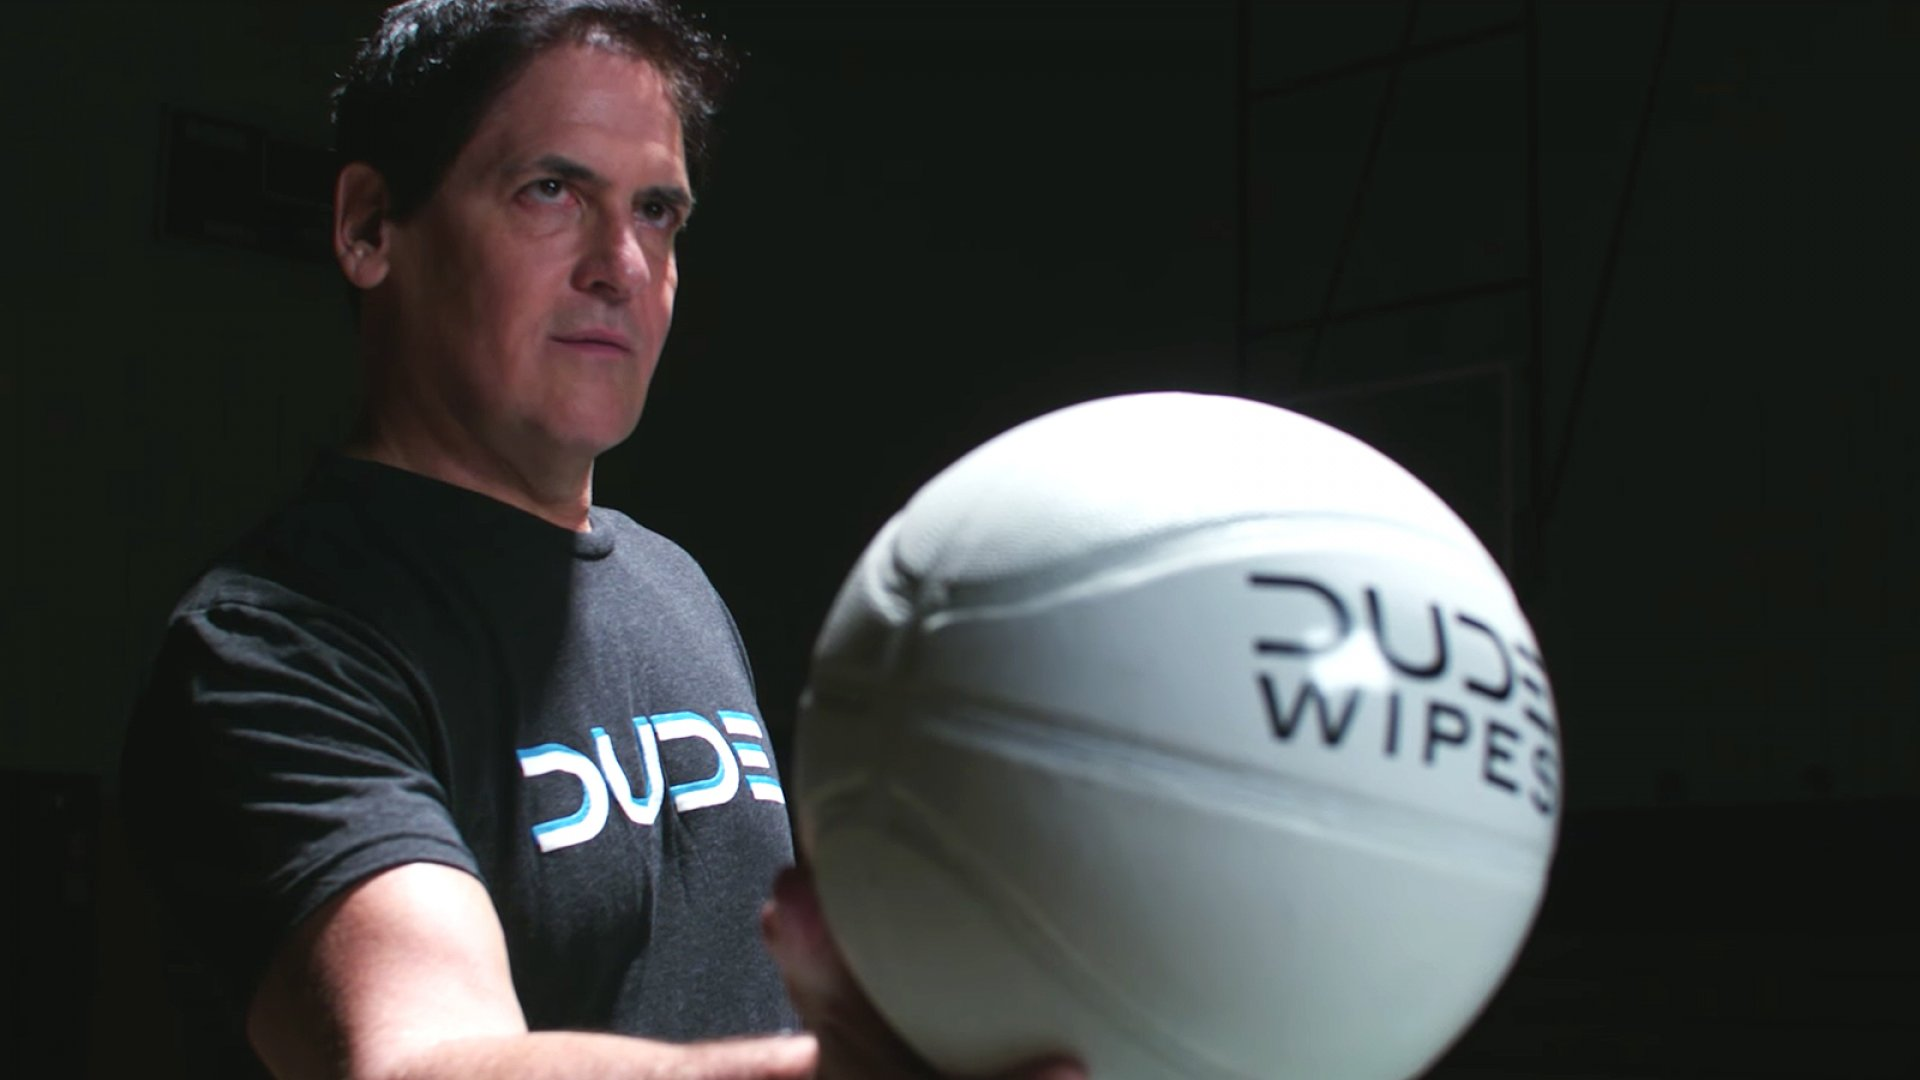 <i>Shark Tank's</i> Mark Cuban appears in a DUDE Wipes commercial.